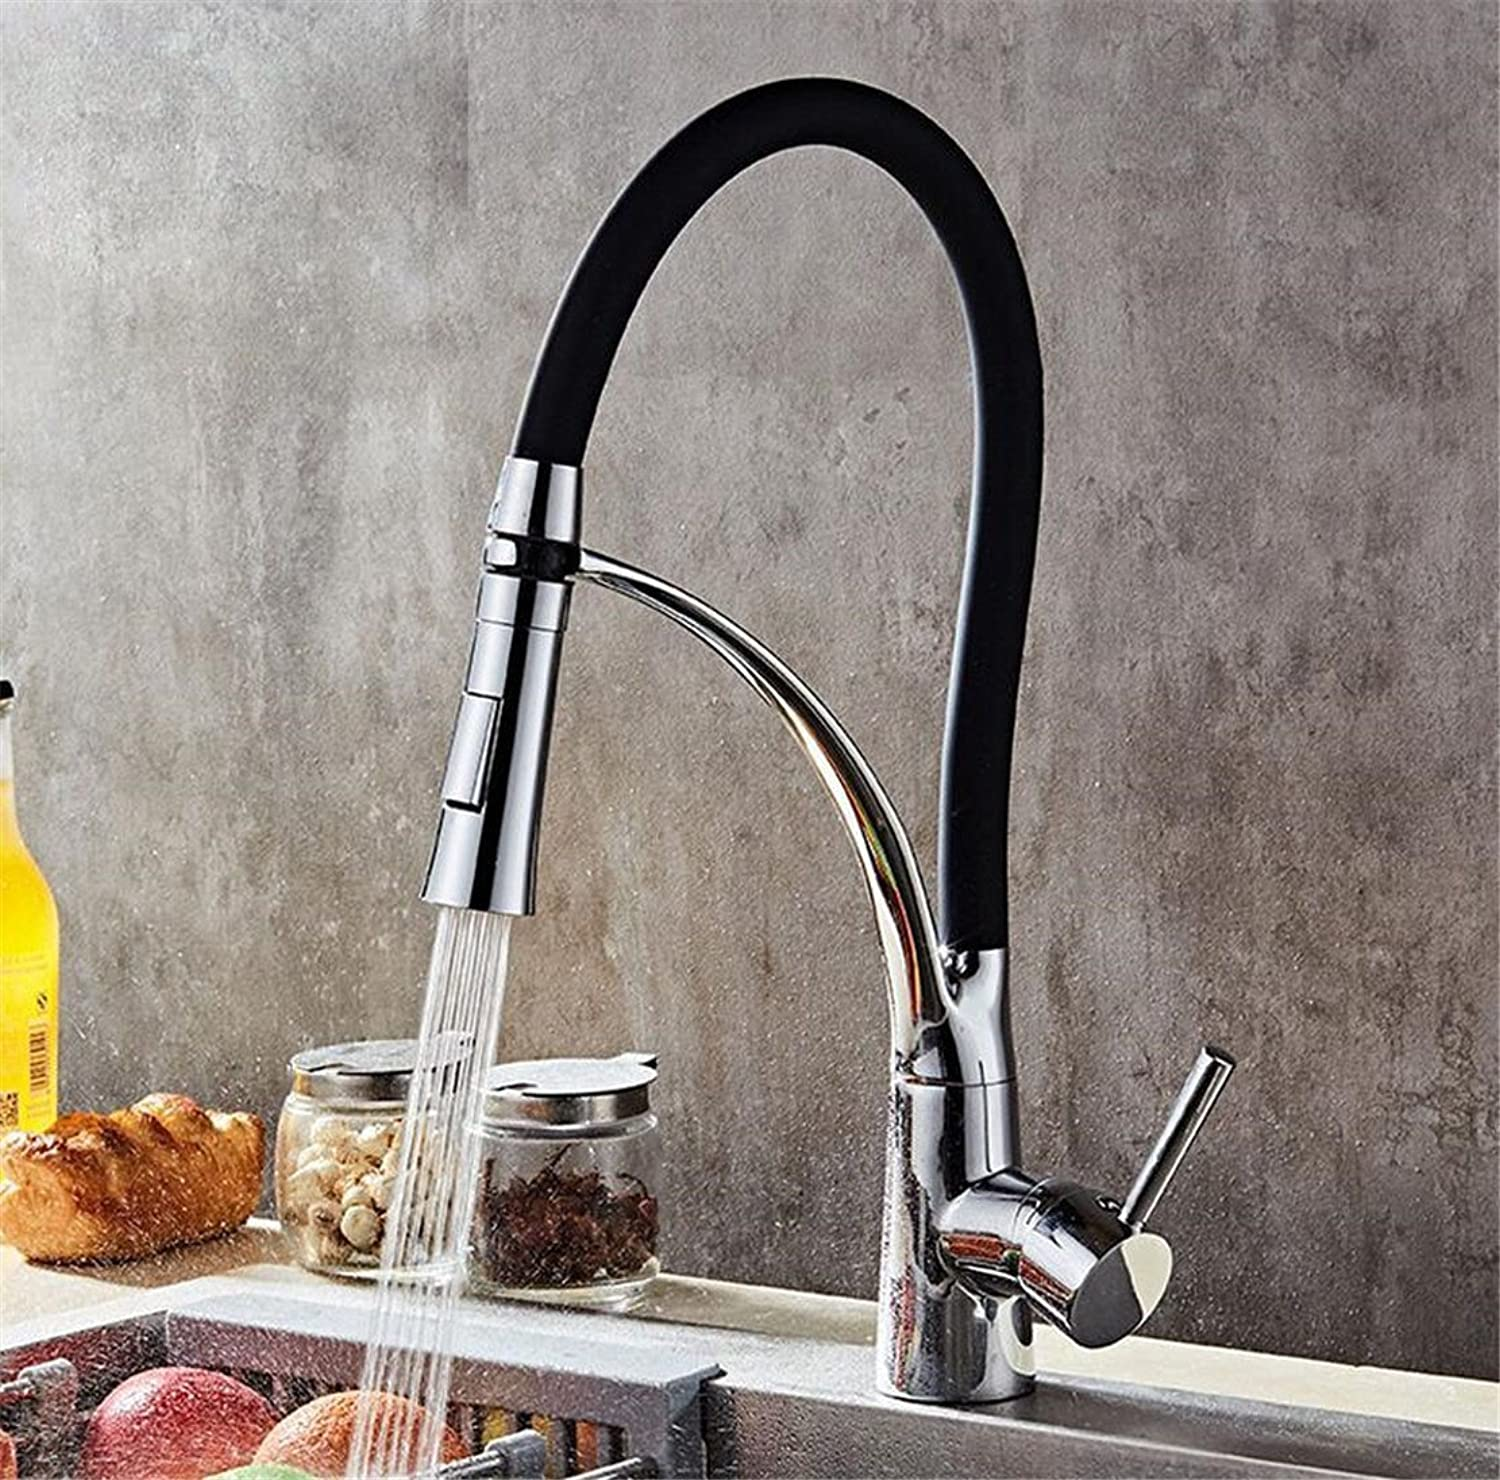 DMR Black Kitchen Sink Mixer Tap Kitchen Bathroom Sink Brass Mixer Tap With Creative American Vegetables Basin Sink redation Dual Head Water Shower Hot And Cold Water Tap